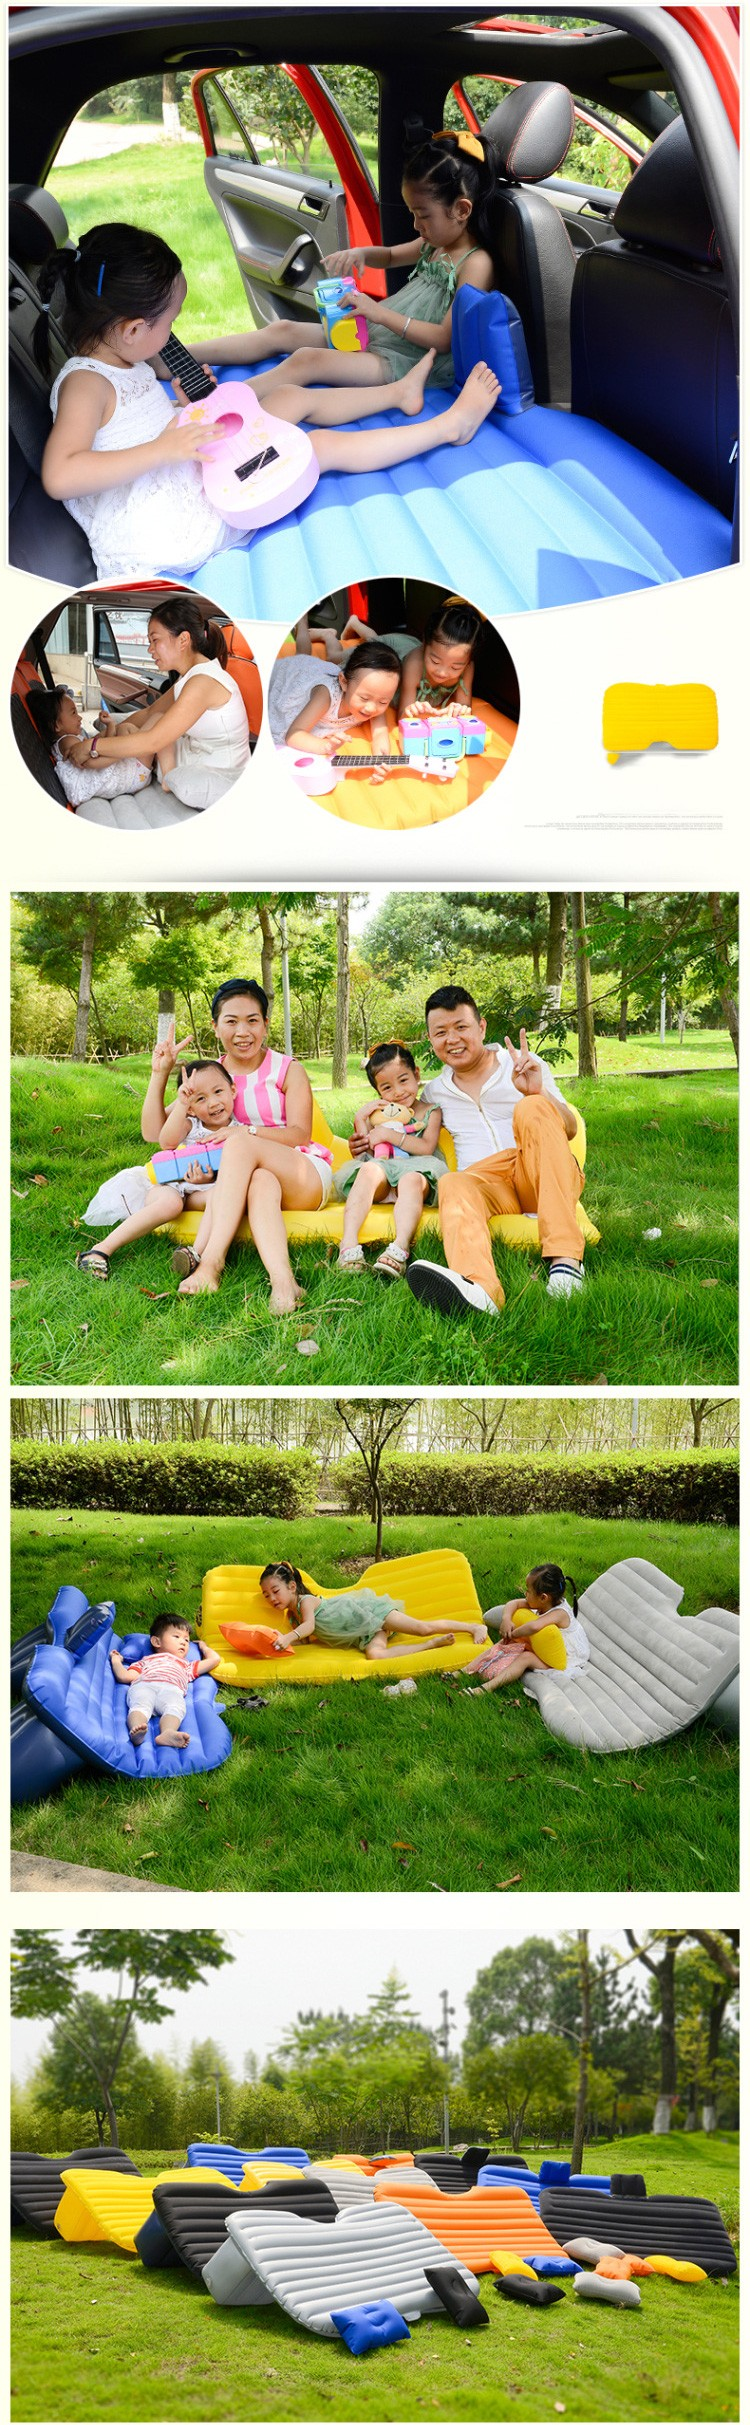 Backseat Inflatable Bed Portable Travel Car Back Seat Sleep Rest Inflatable Mattress Air